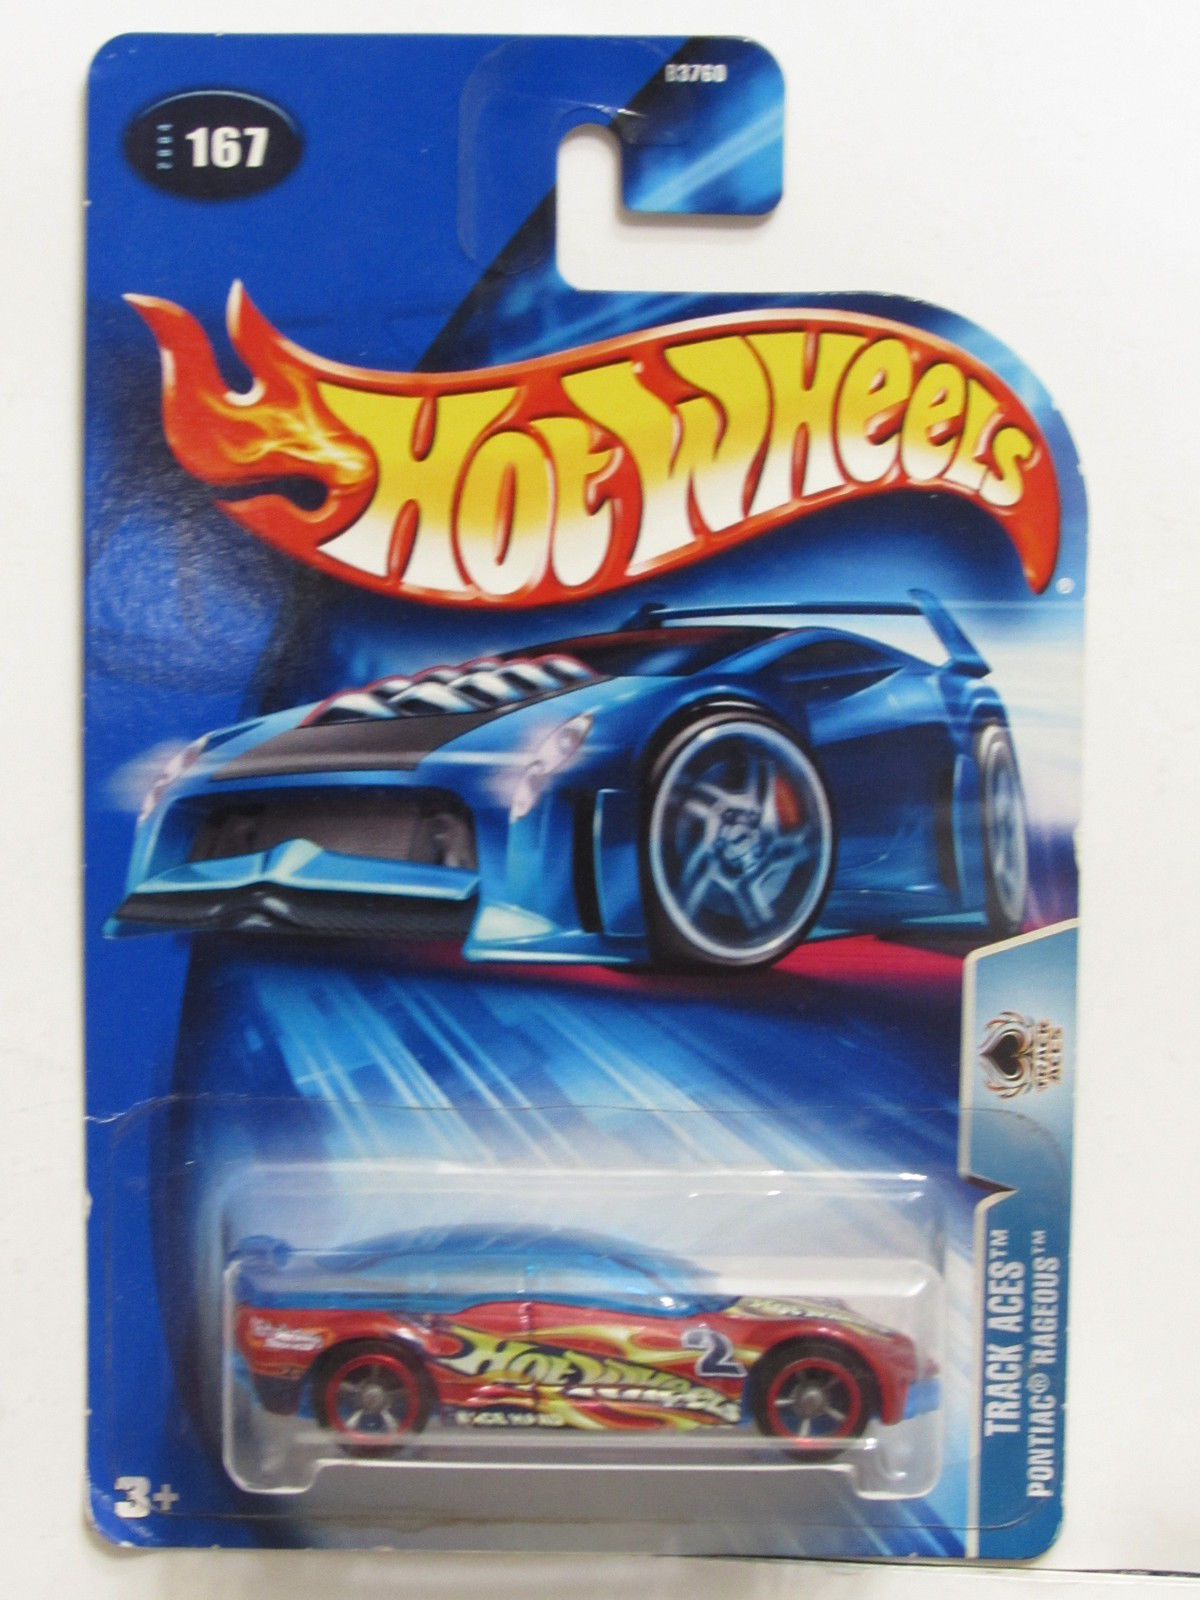 HOT WHEELS 2004 TRACK ACES PONTIAC RAGEOUS #167 E+